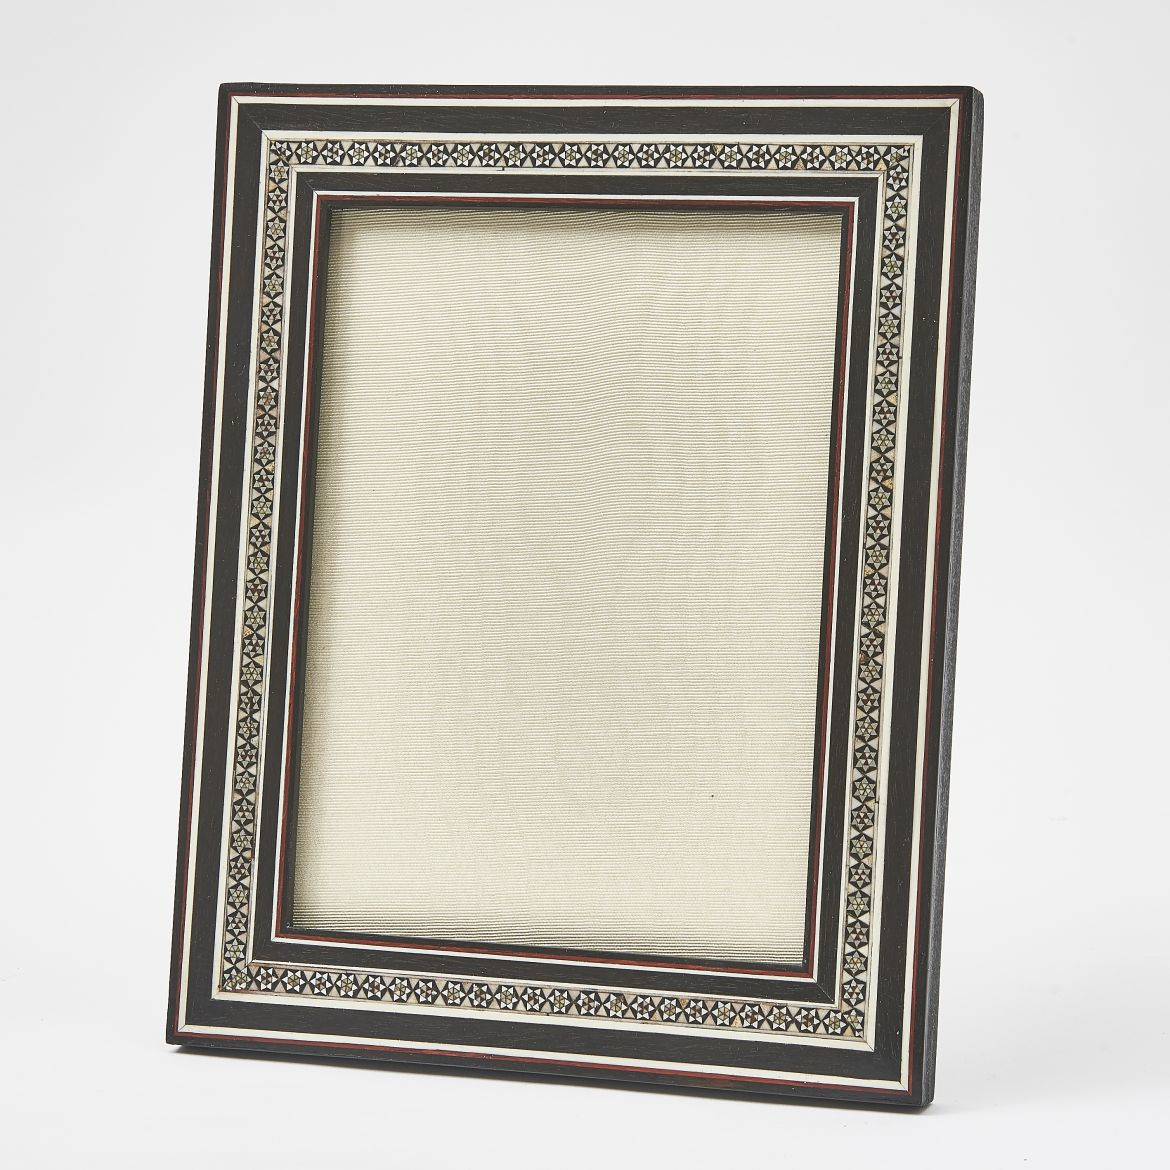 Black And White Sadeli Frame With Ebony Bands